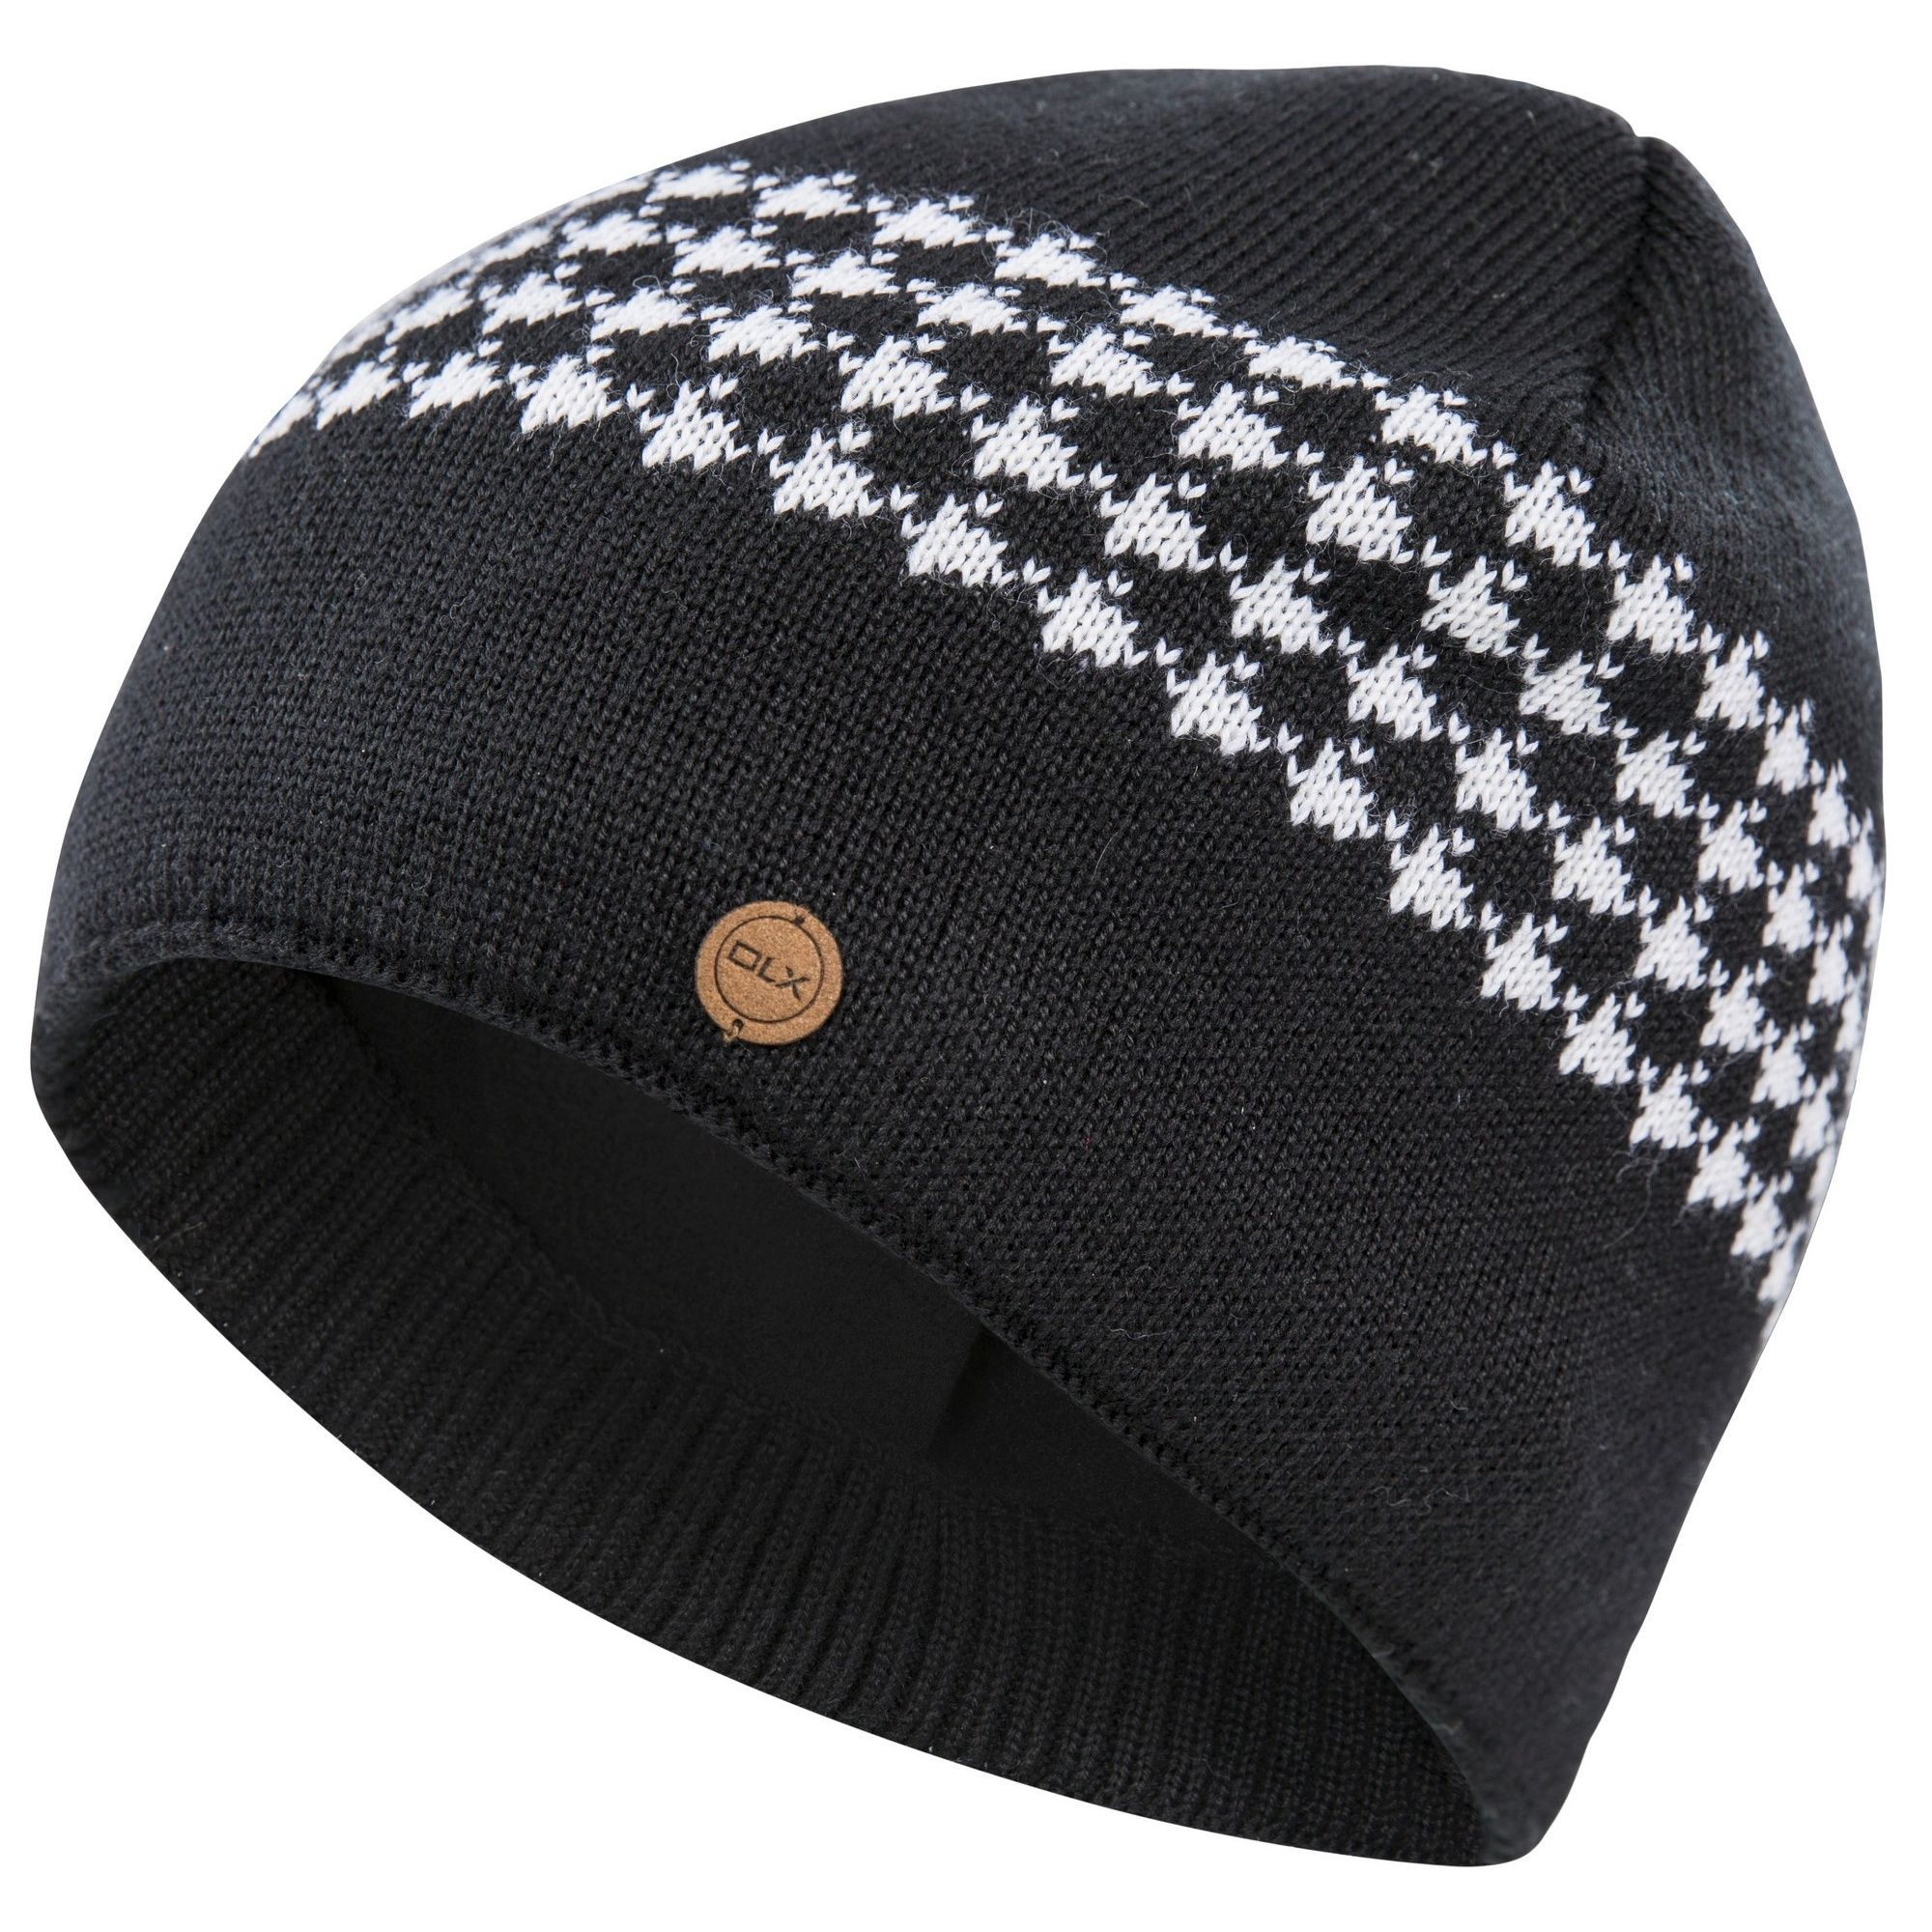 Trespass Mens Capaldi Beanie Hat